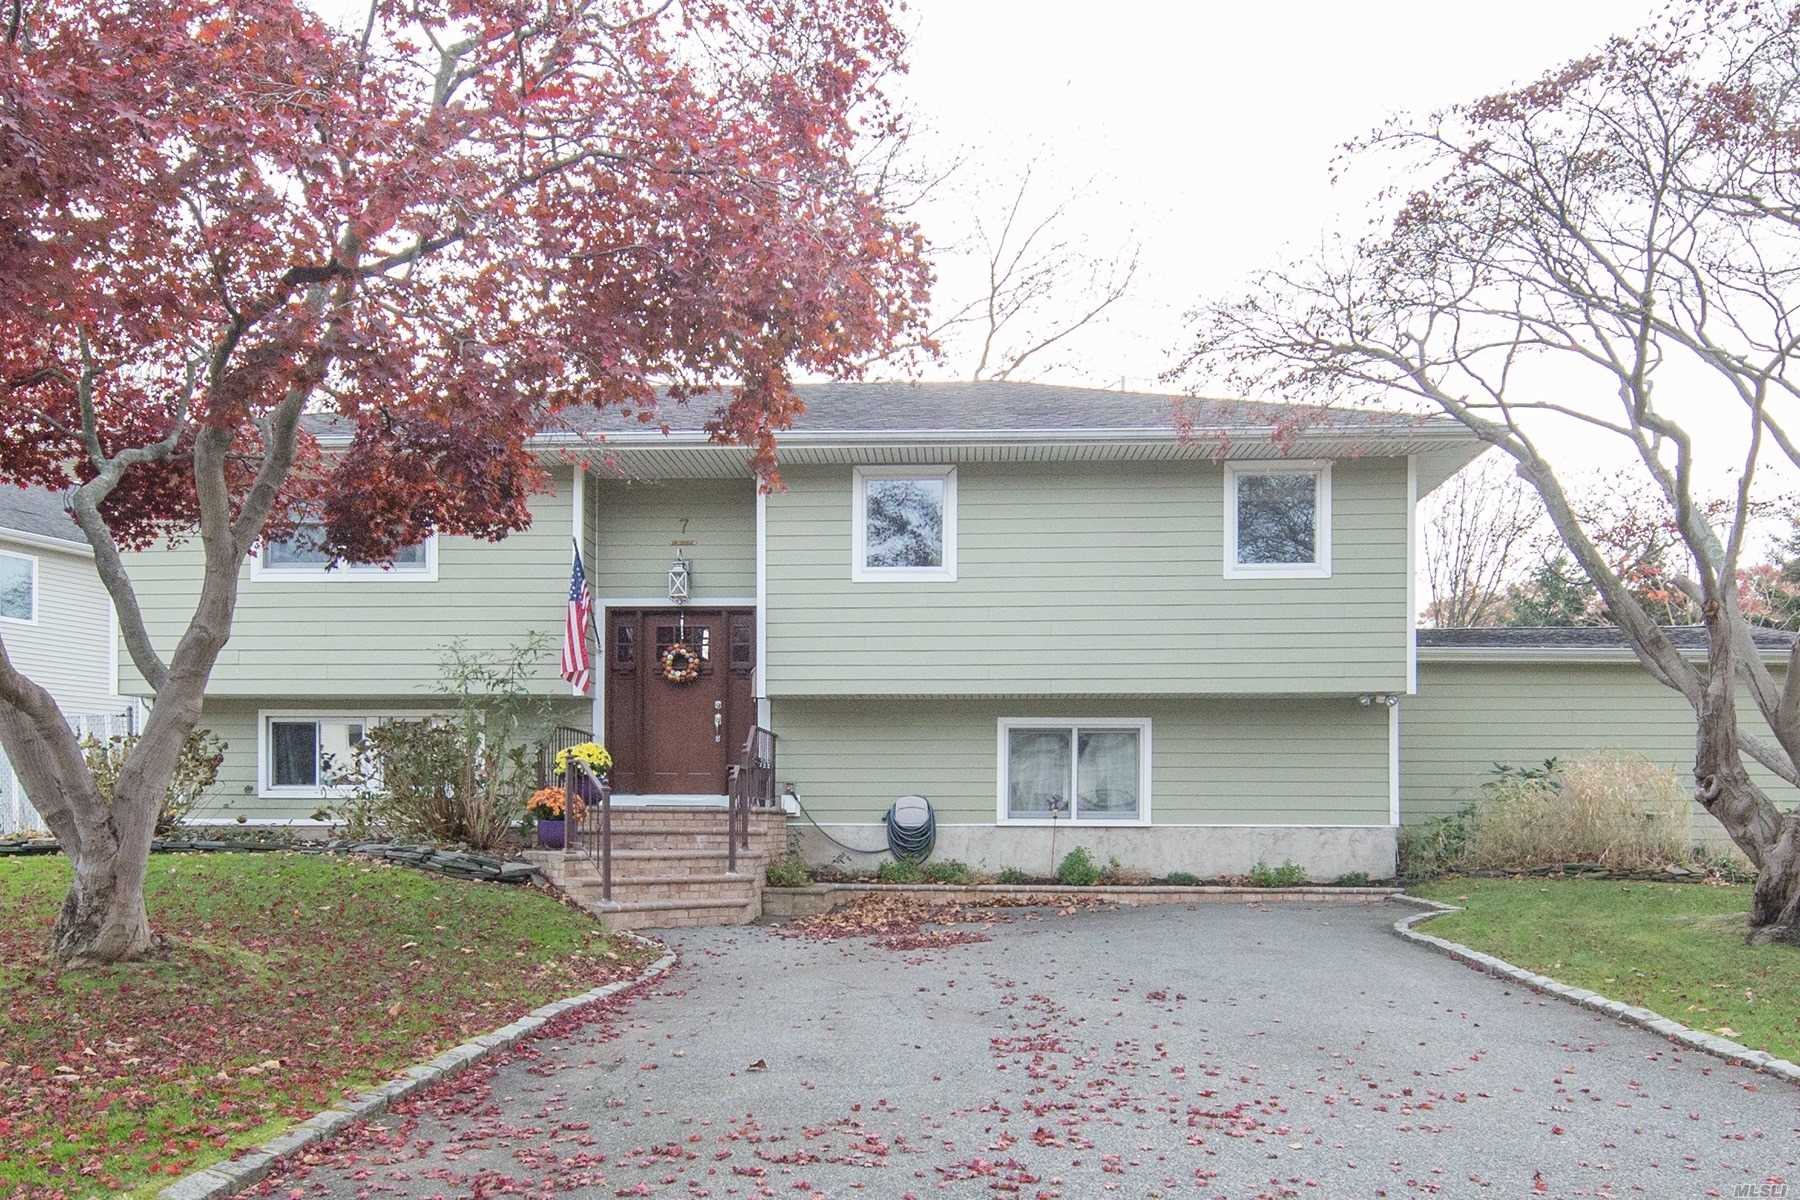 Move Right In To This Immaculate High Ranch In Old Bethpage! Open Renovated Eat In Kitchen W/Granite Countertops, Island, New Fridge,  Beautiful Hard Wood Floors, Large Master Suite With Full Bath, Bedroom, Full Bath On Main Level. Lower Level Has A Large Family Room/Den, 2 Big Bedrooms, Full Bath And New Washer/Dryer. Lots Of Updates! 200 Amp Electric, New Cac, New Hw Heater, Large Yard With New Trex Deck. Attached 1.5 Garage With New Garage Door, 2 Private Driveways! Beautiful Park Nearby!